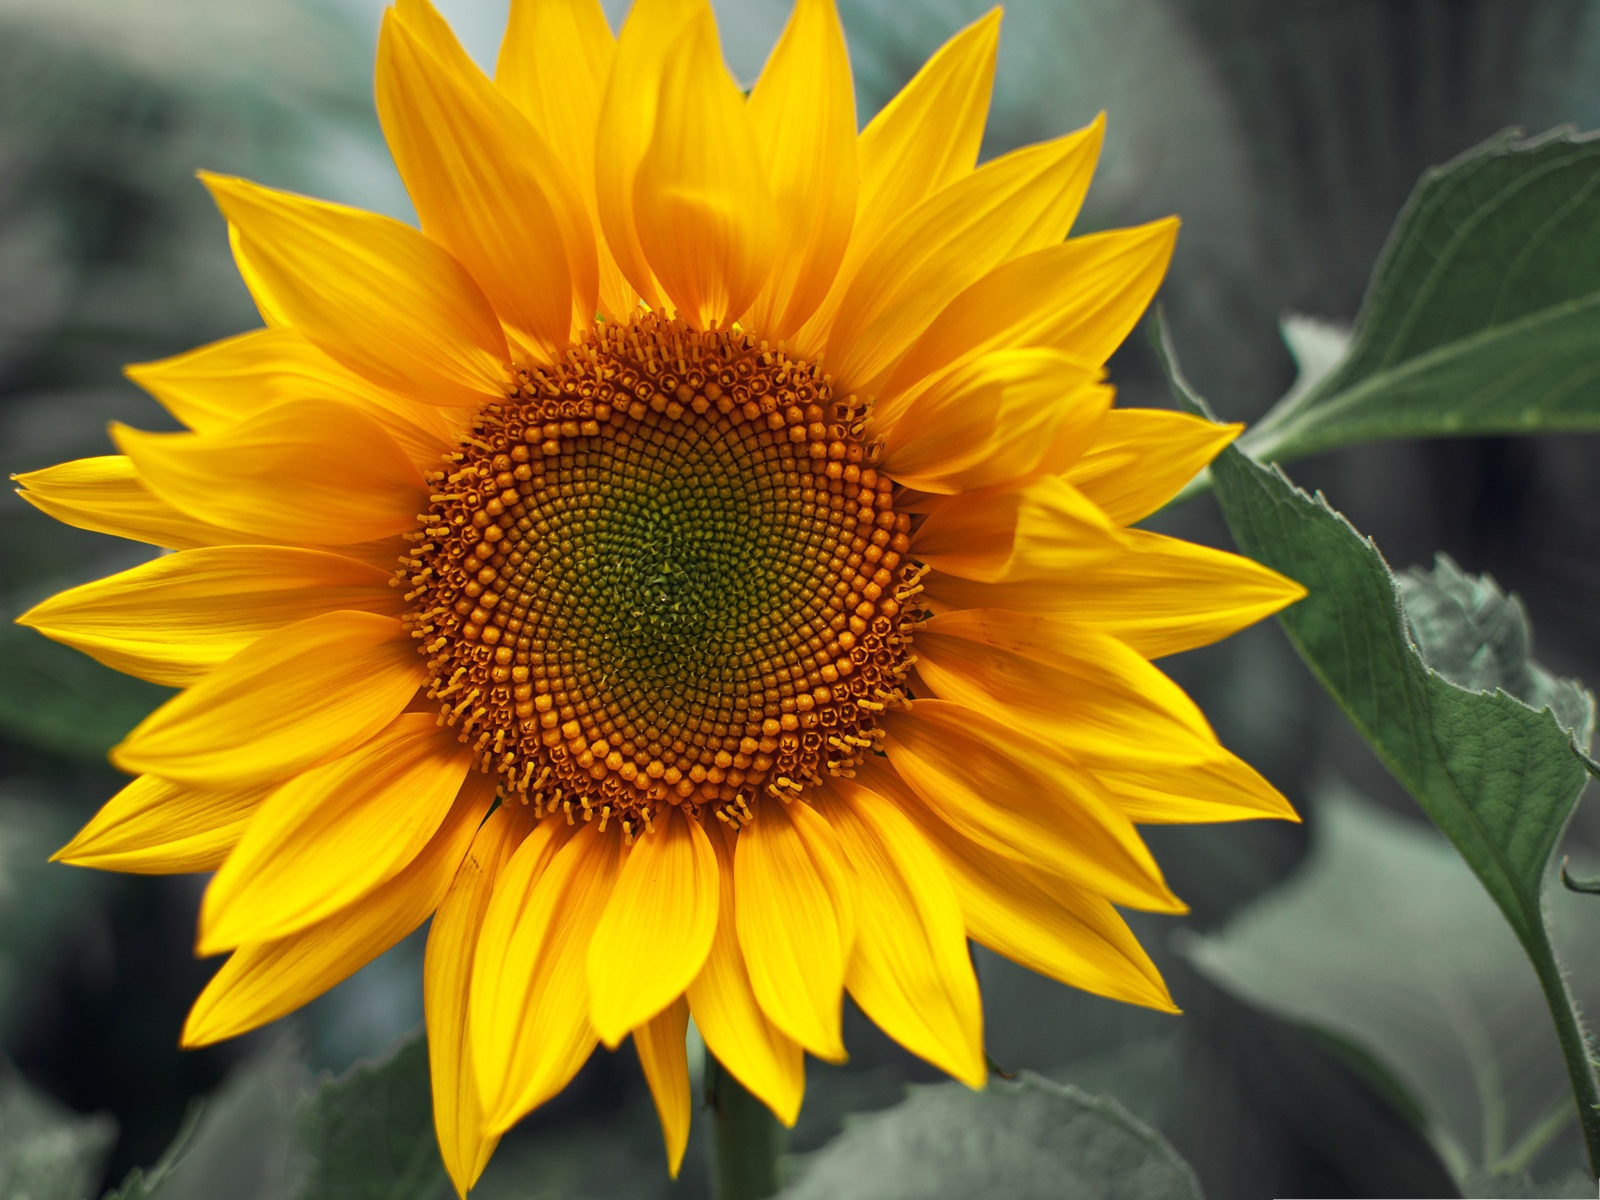 click to free download the wallpaper--Yellow Sunflower Picture, Beautiful Sunflower in Bloom, in Happy Smile 1600X1200 free wallpaper download